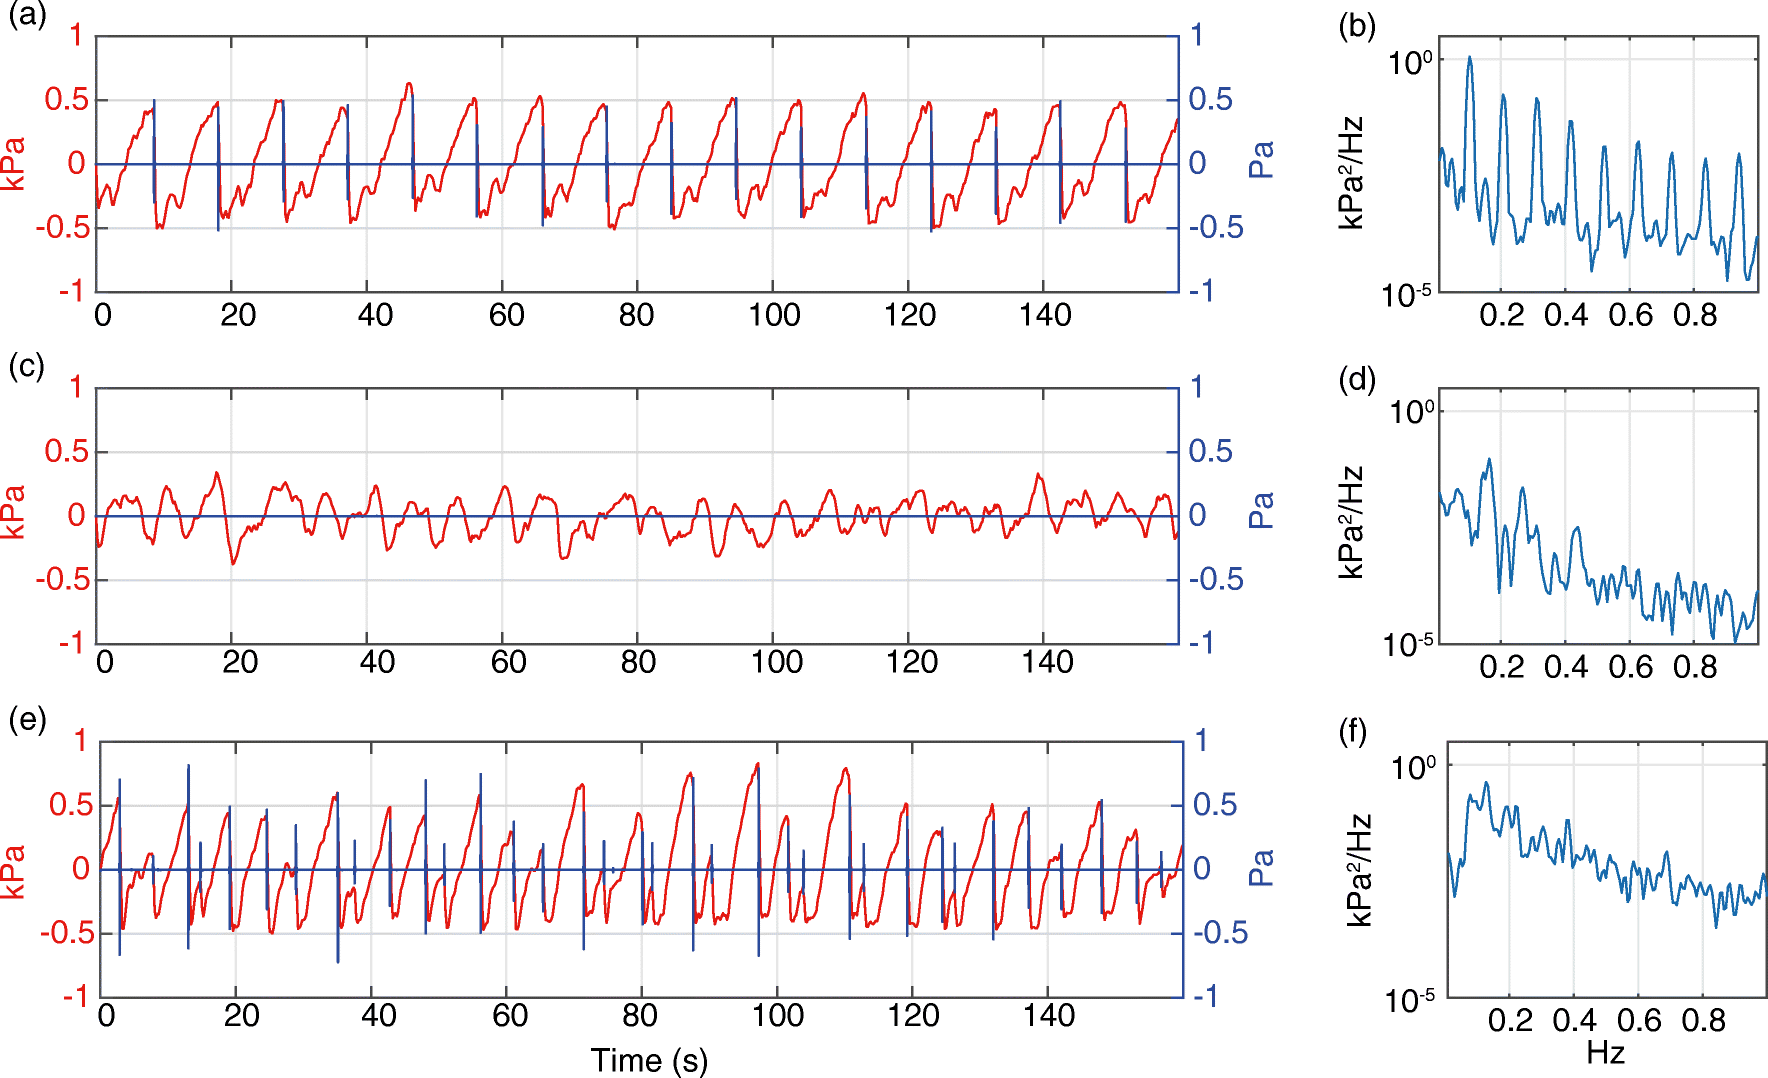 Sawtooth wave-like pressure changes in a syrup eruption experiment